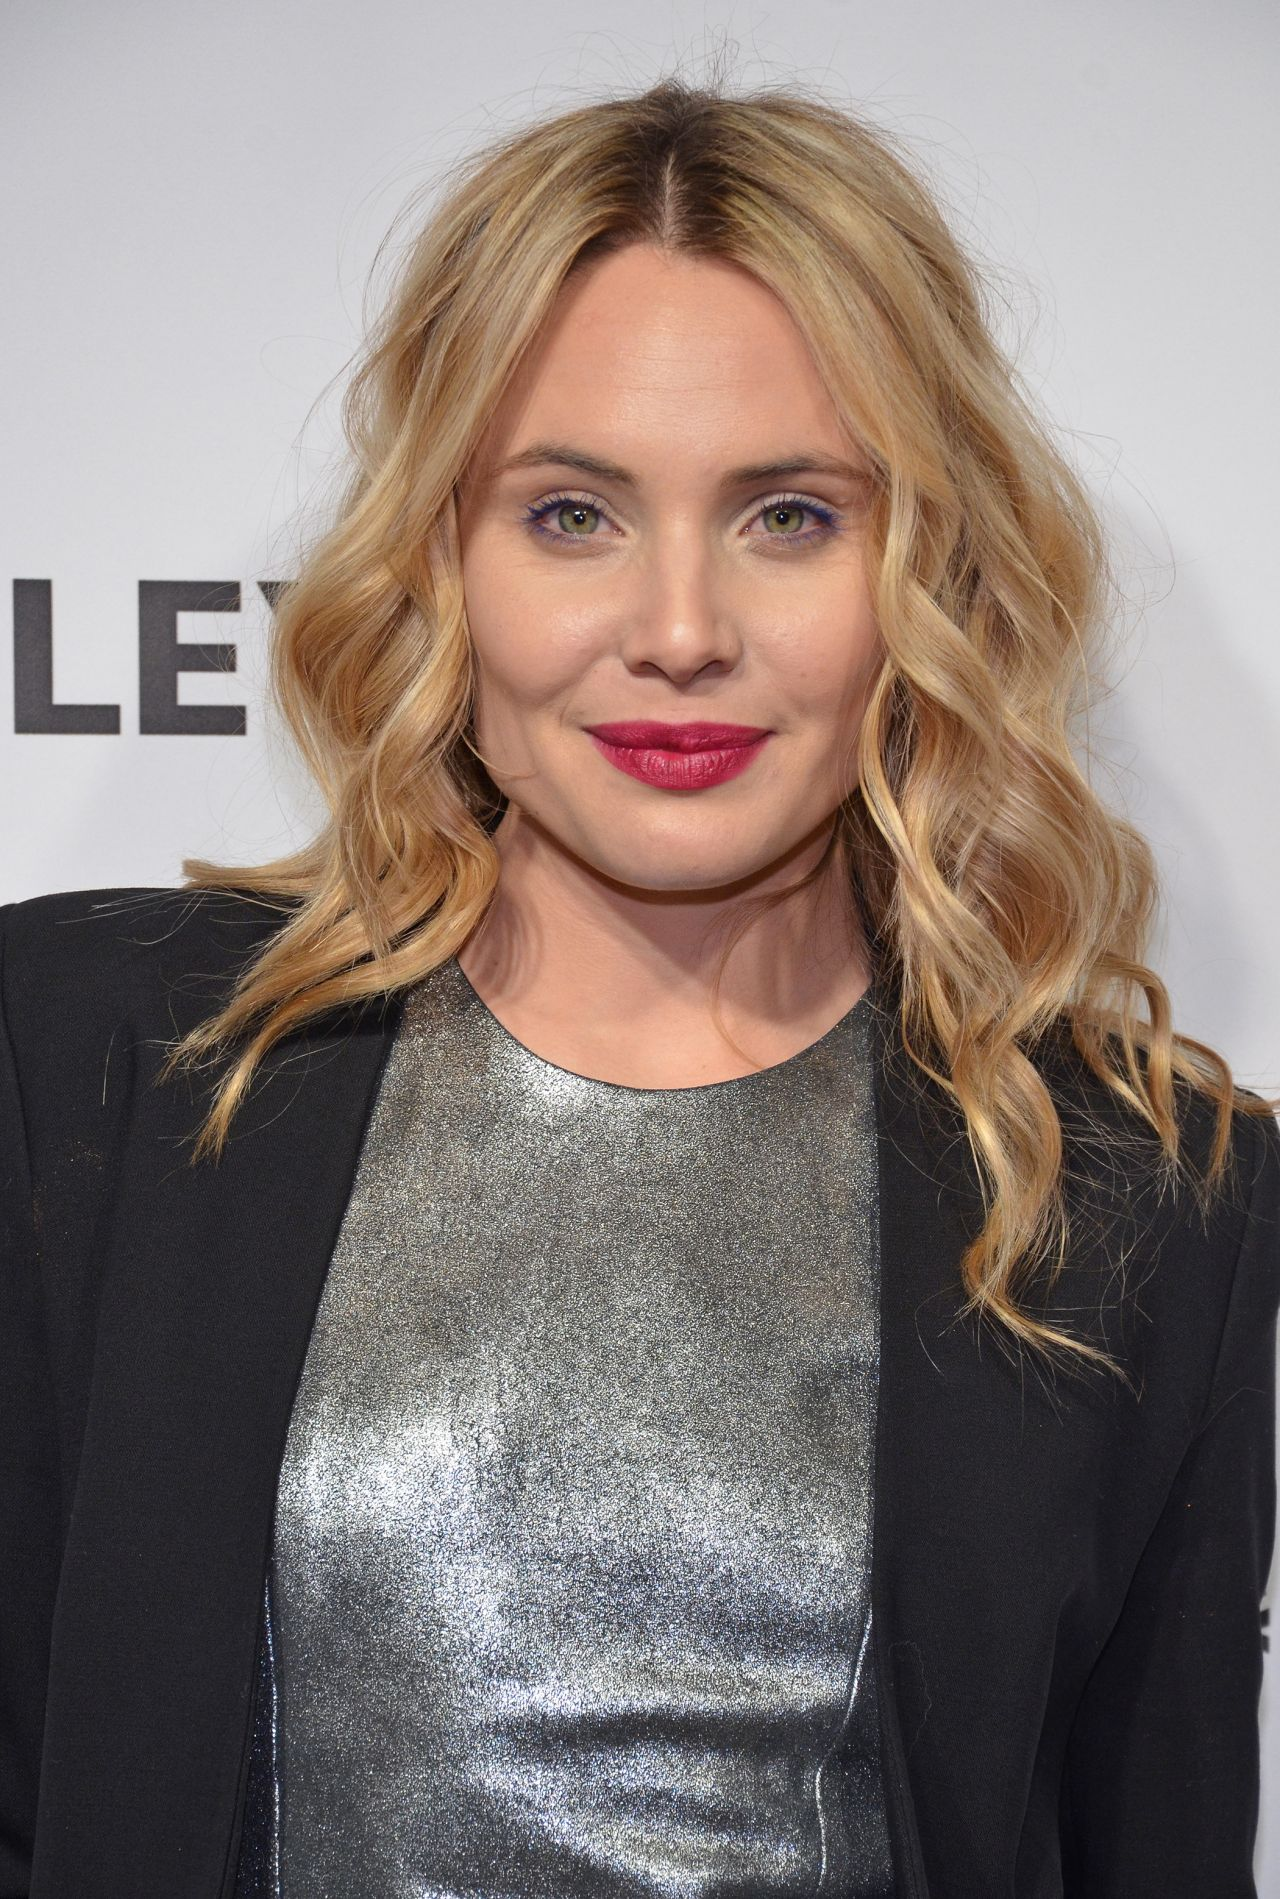 leah pipes - photo #11